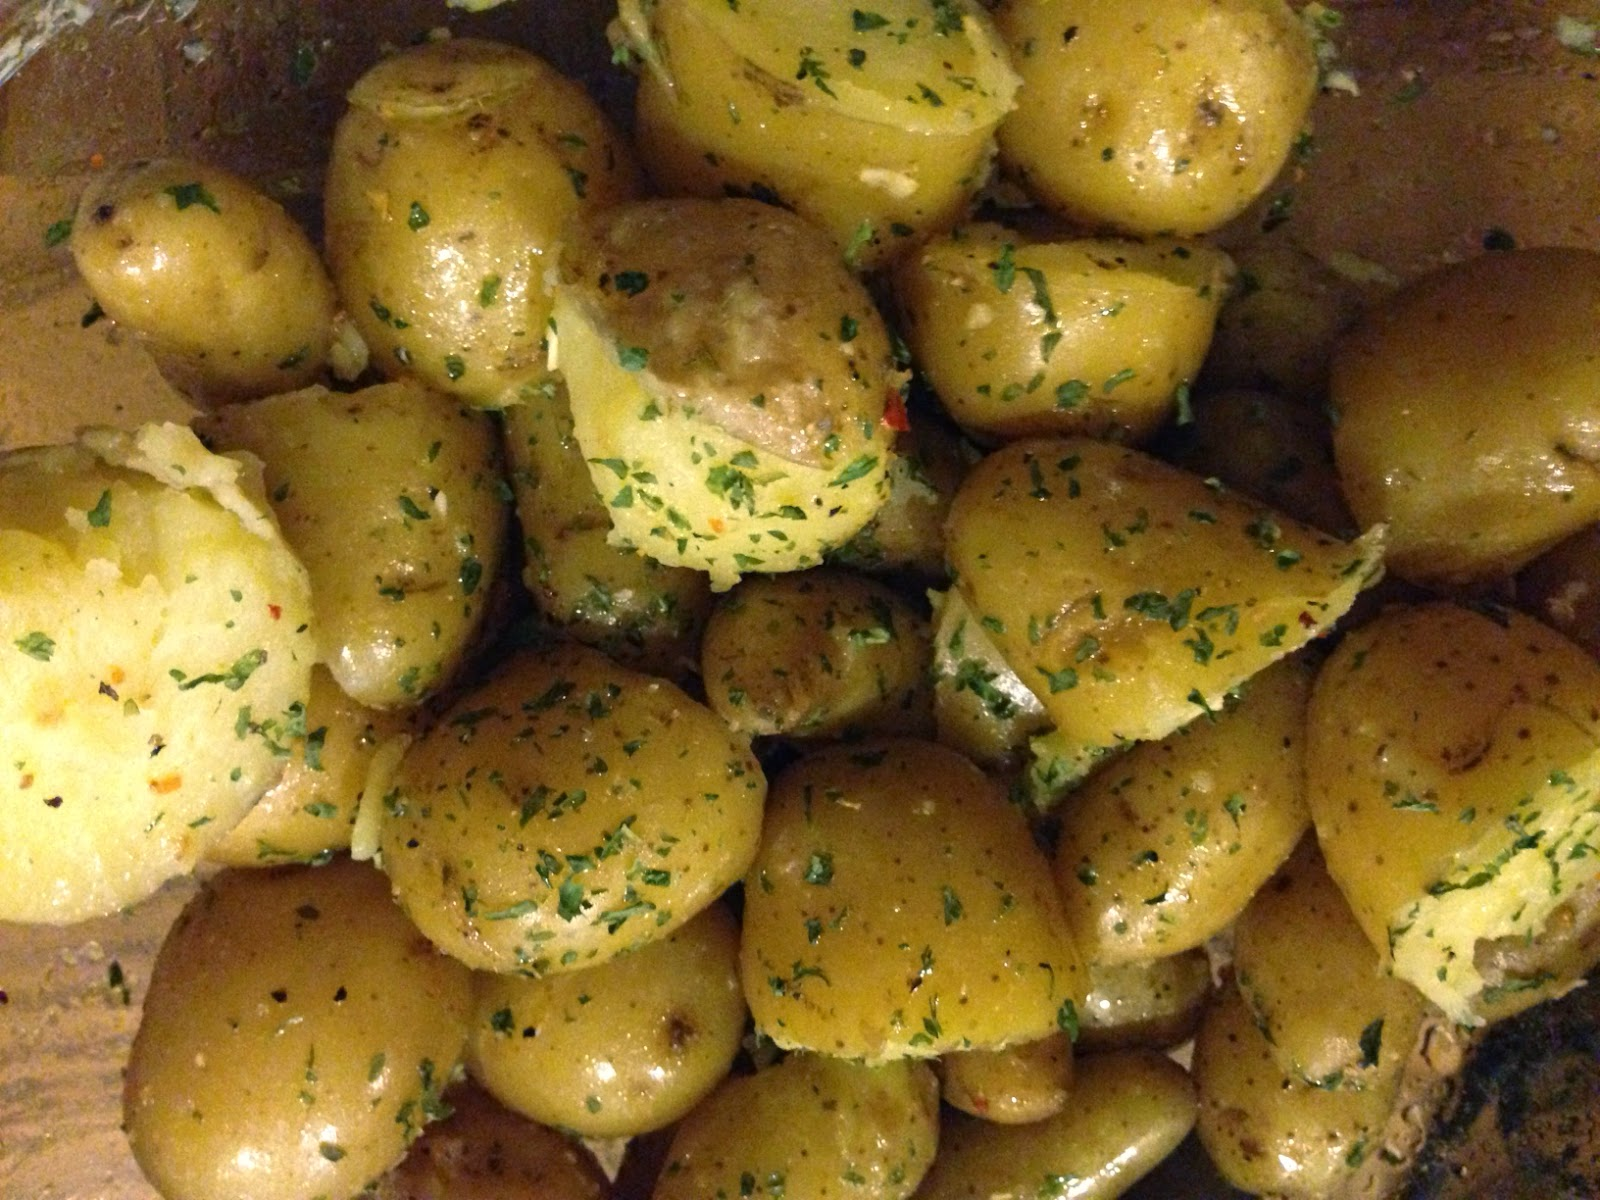 Fingerling and Baby Potatoes tossed in Ghee and sprinkled with herbs